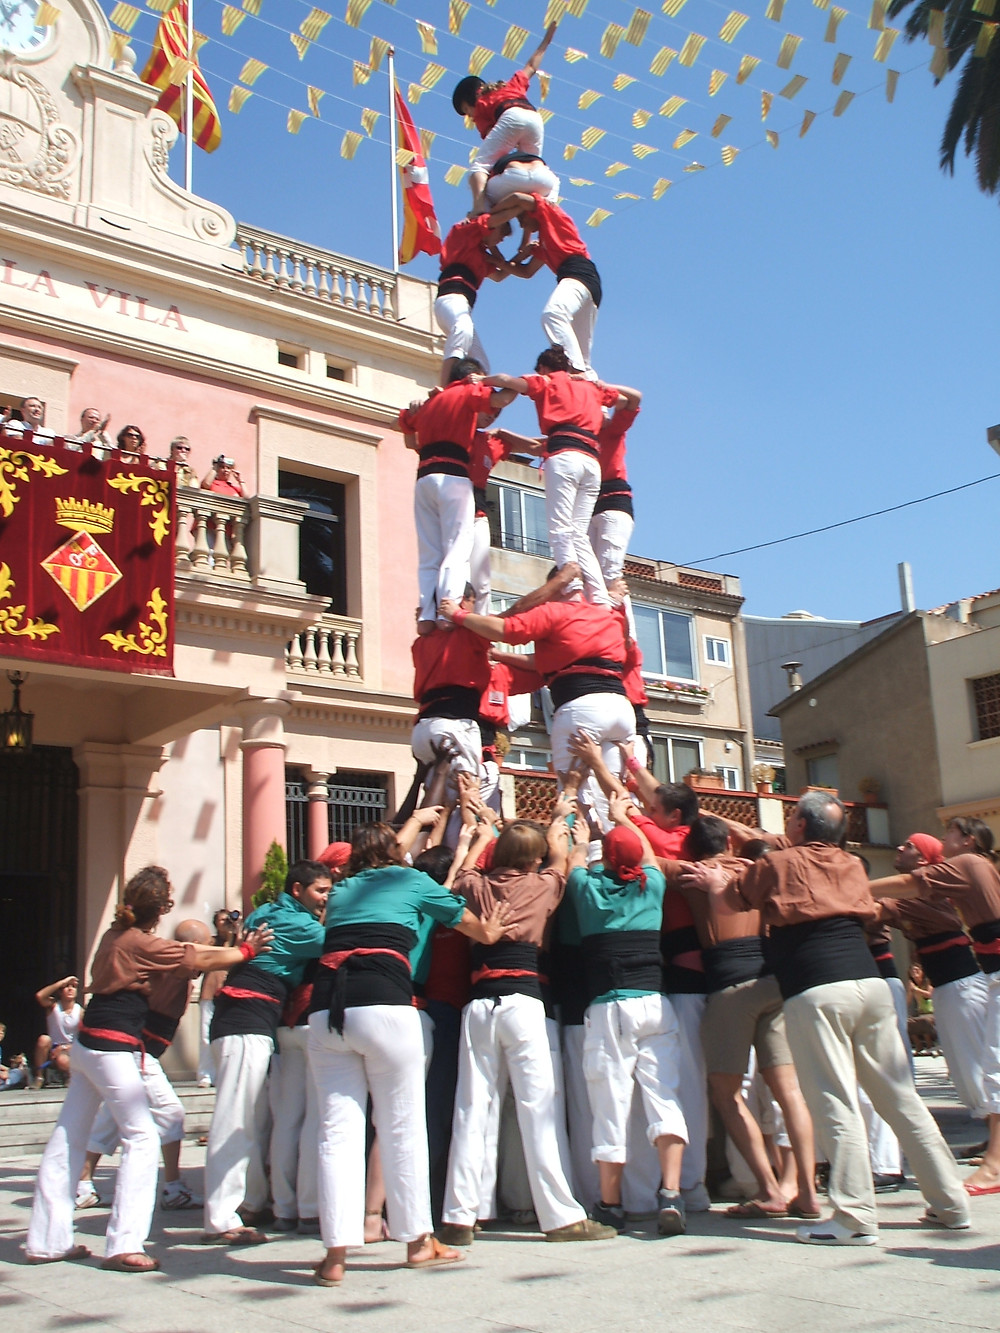 Castellers in action making a human tower at Festa Major de Gracia